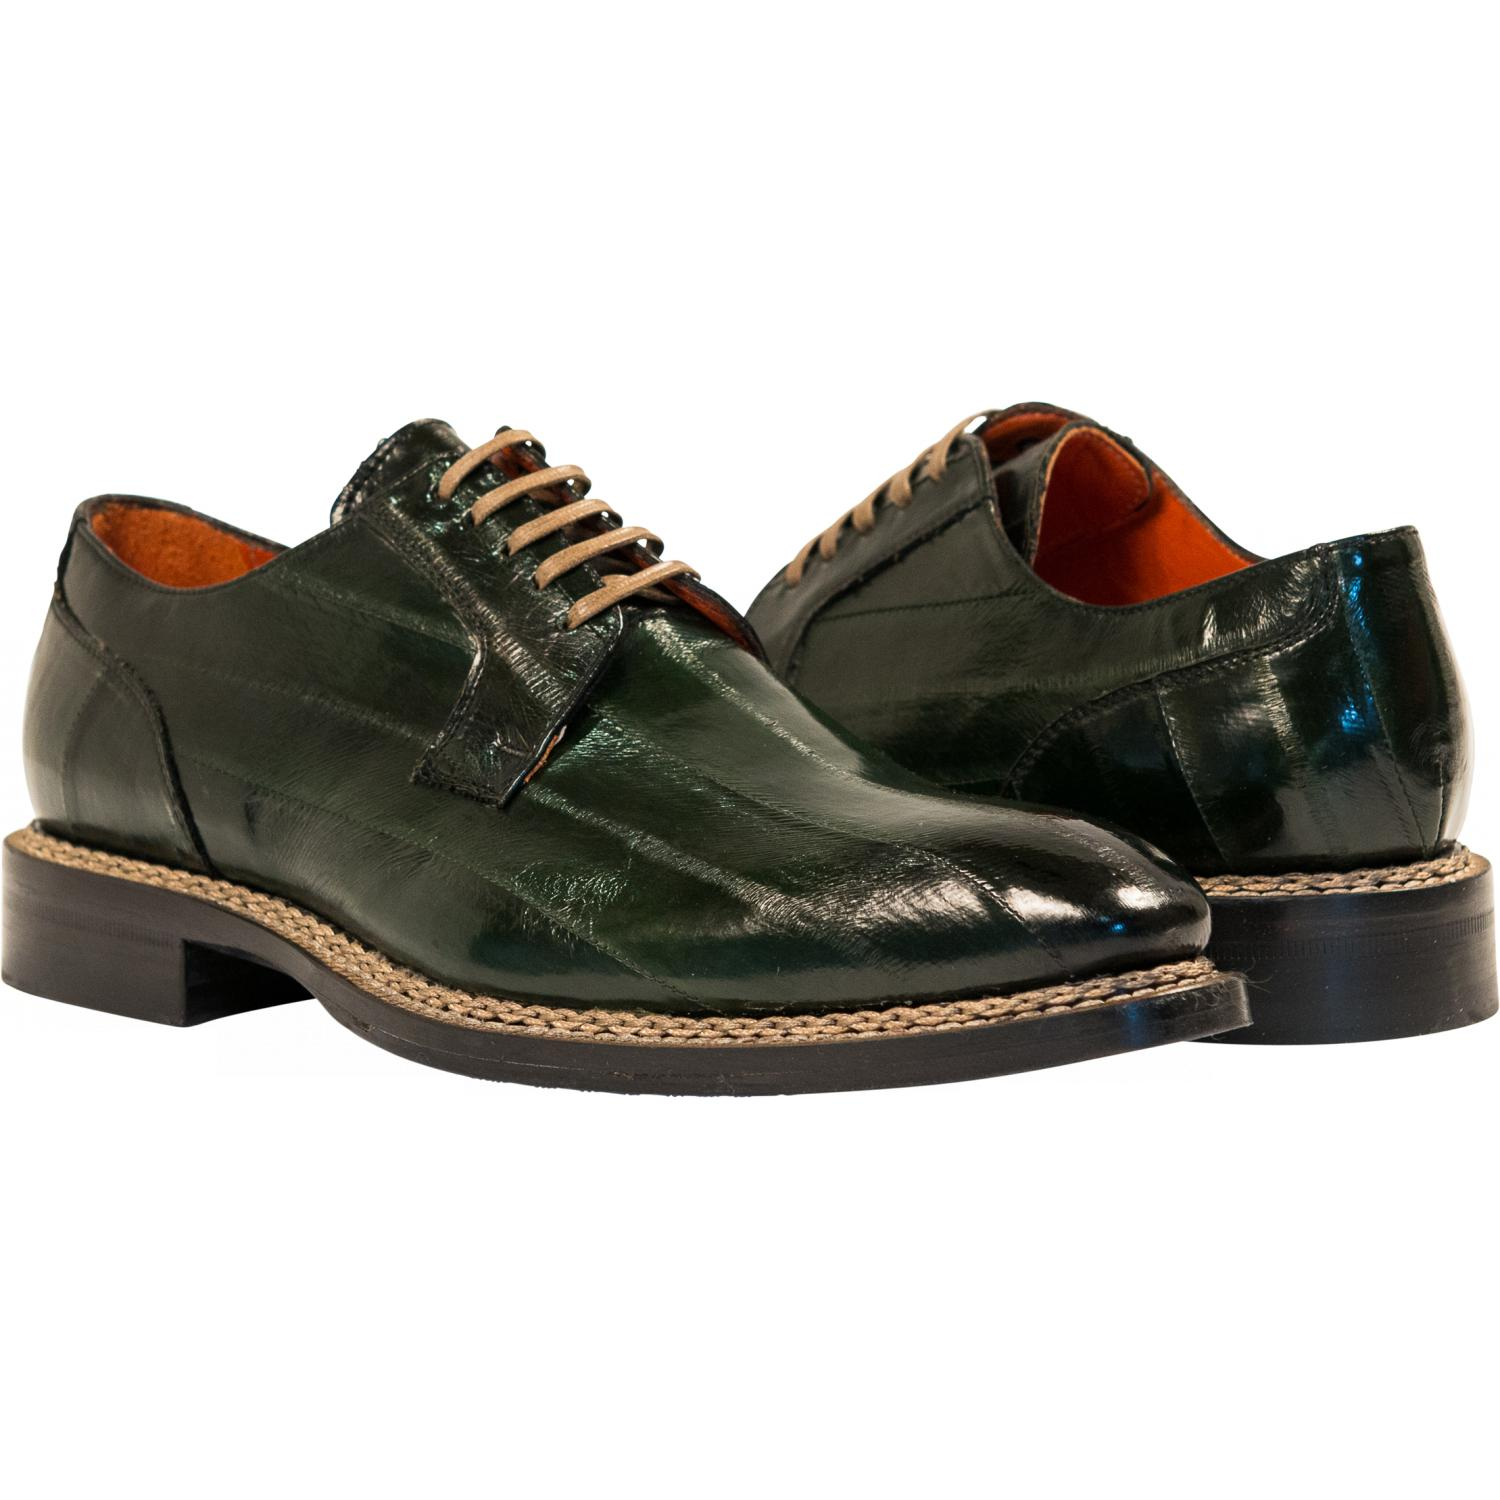 Terry Dark Green Quot Verde Quot Eel Skin Laced Up Dress Shoes